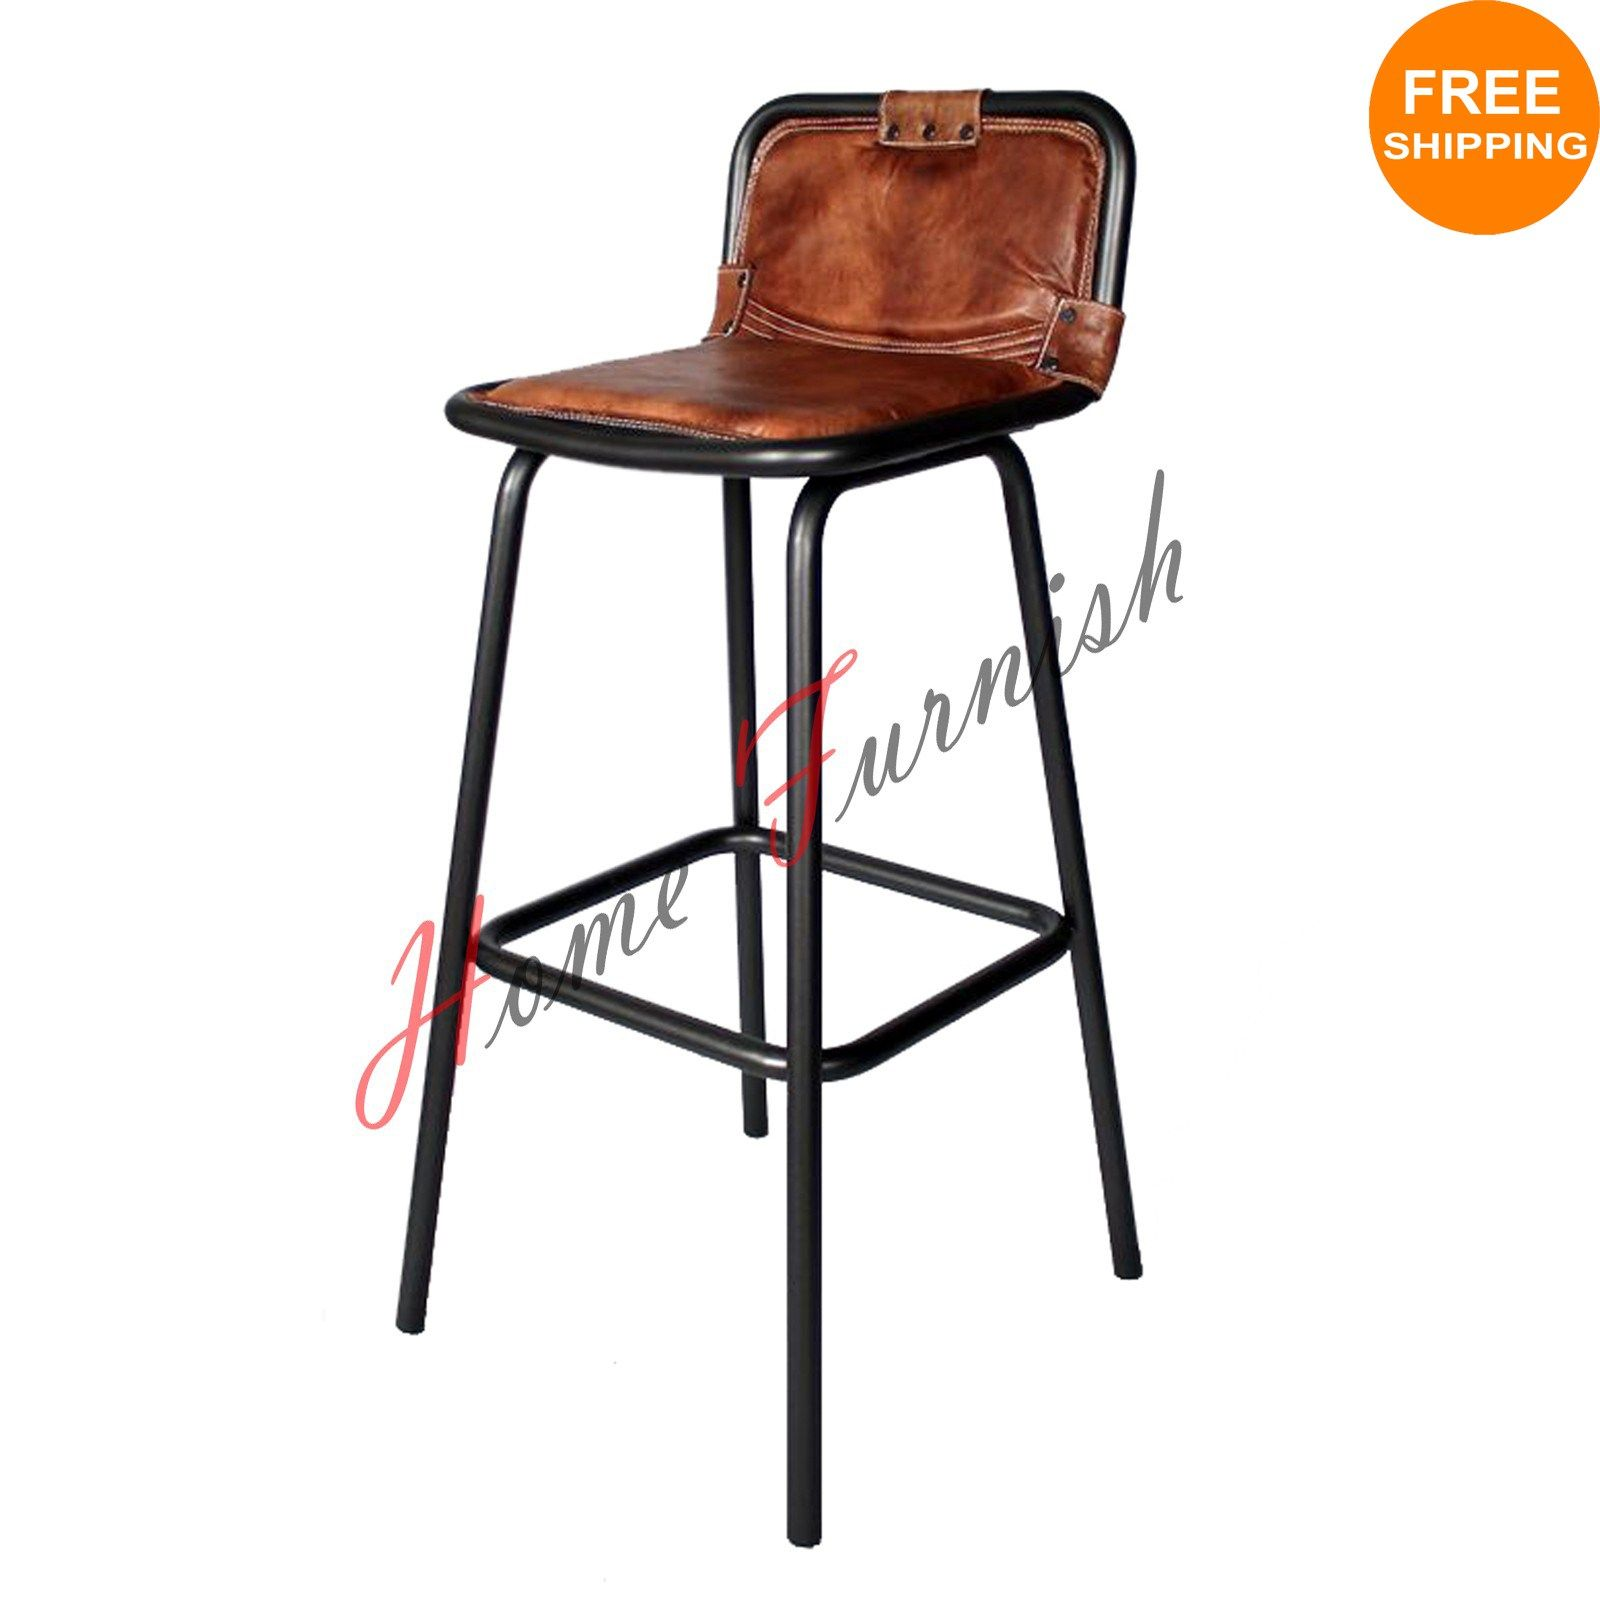 Stupendous Industrial Bar Stool Leather Seat With Back Brown Leather Ibusinesslaw Wood Chair Design Ideas Ibusinesslaworg